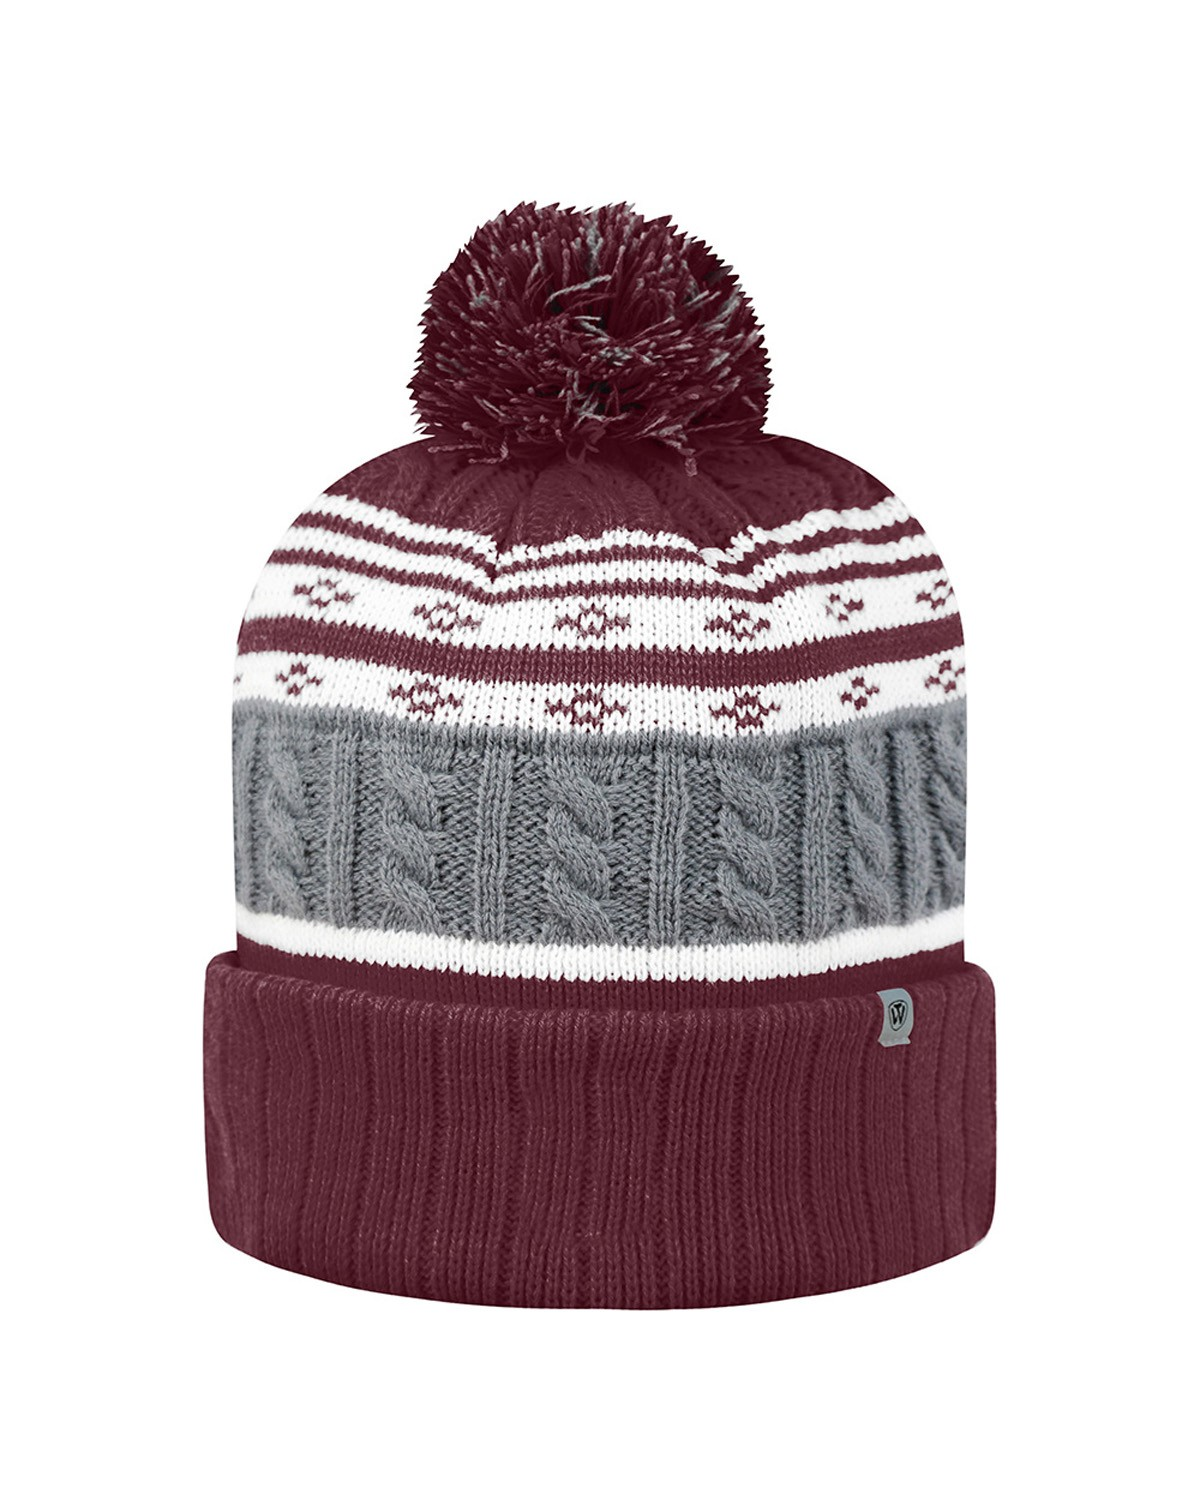 TW5002 Top Of The World BURGUNDY